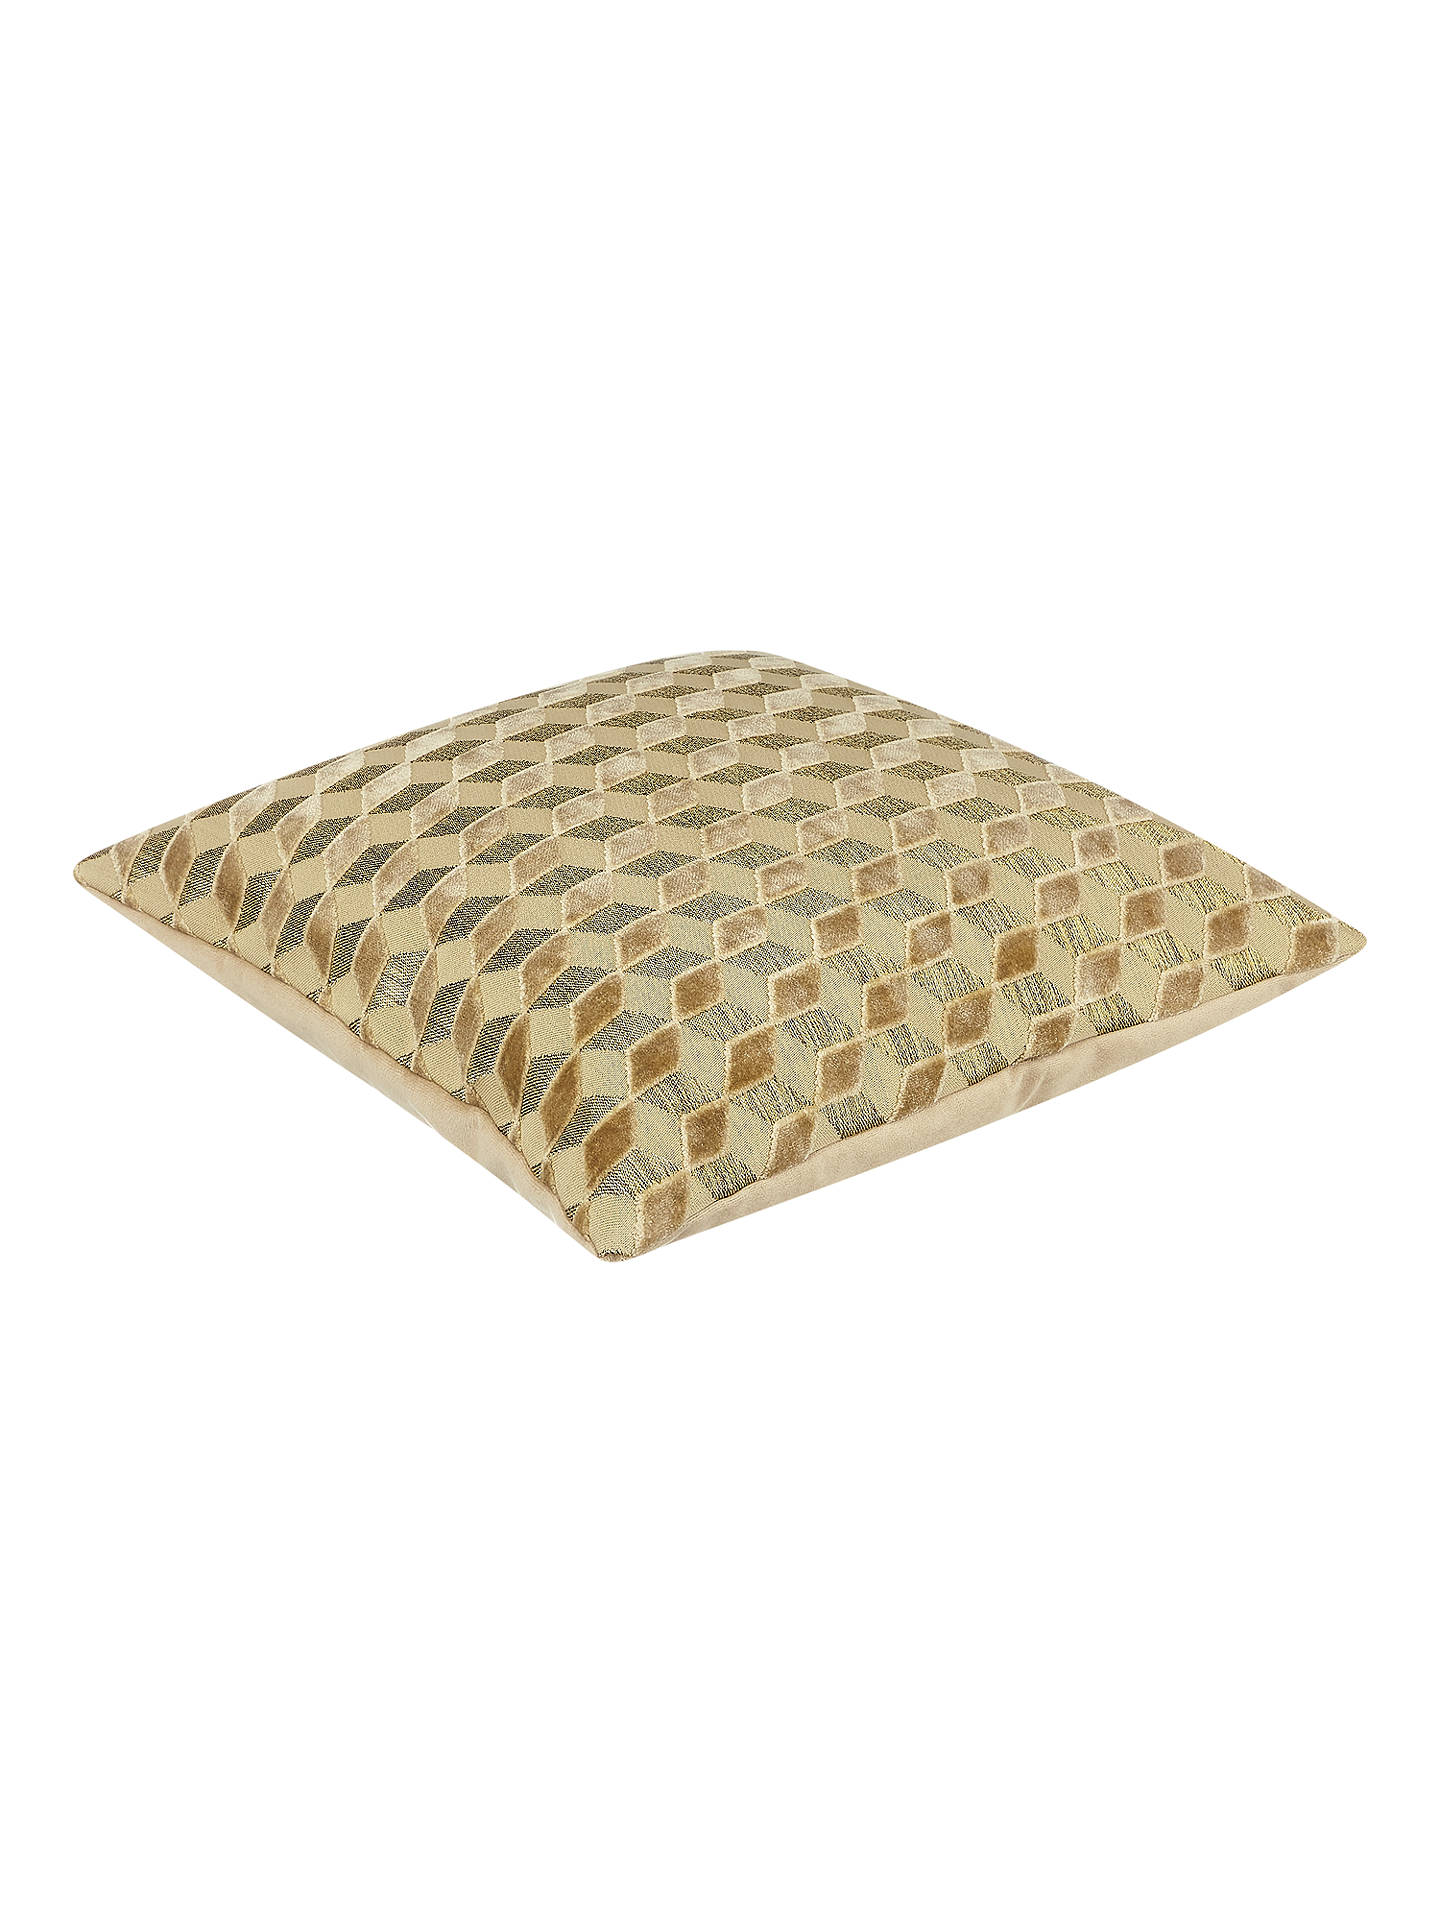 Buy John Lewis & Partners Hanover Velvet Cushion, Gold Online at johnlewis.com